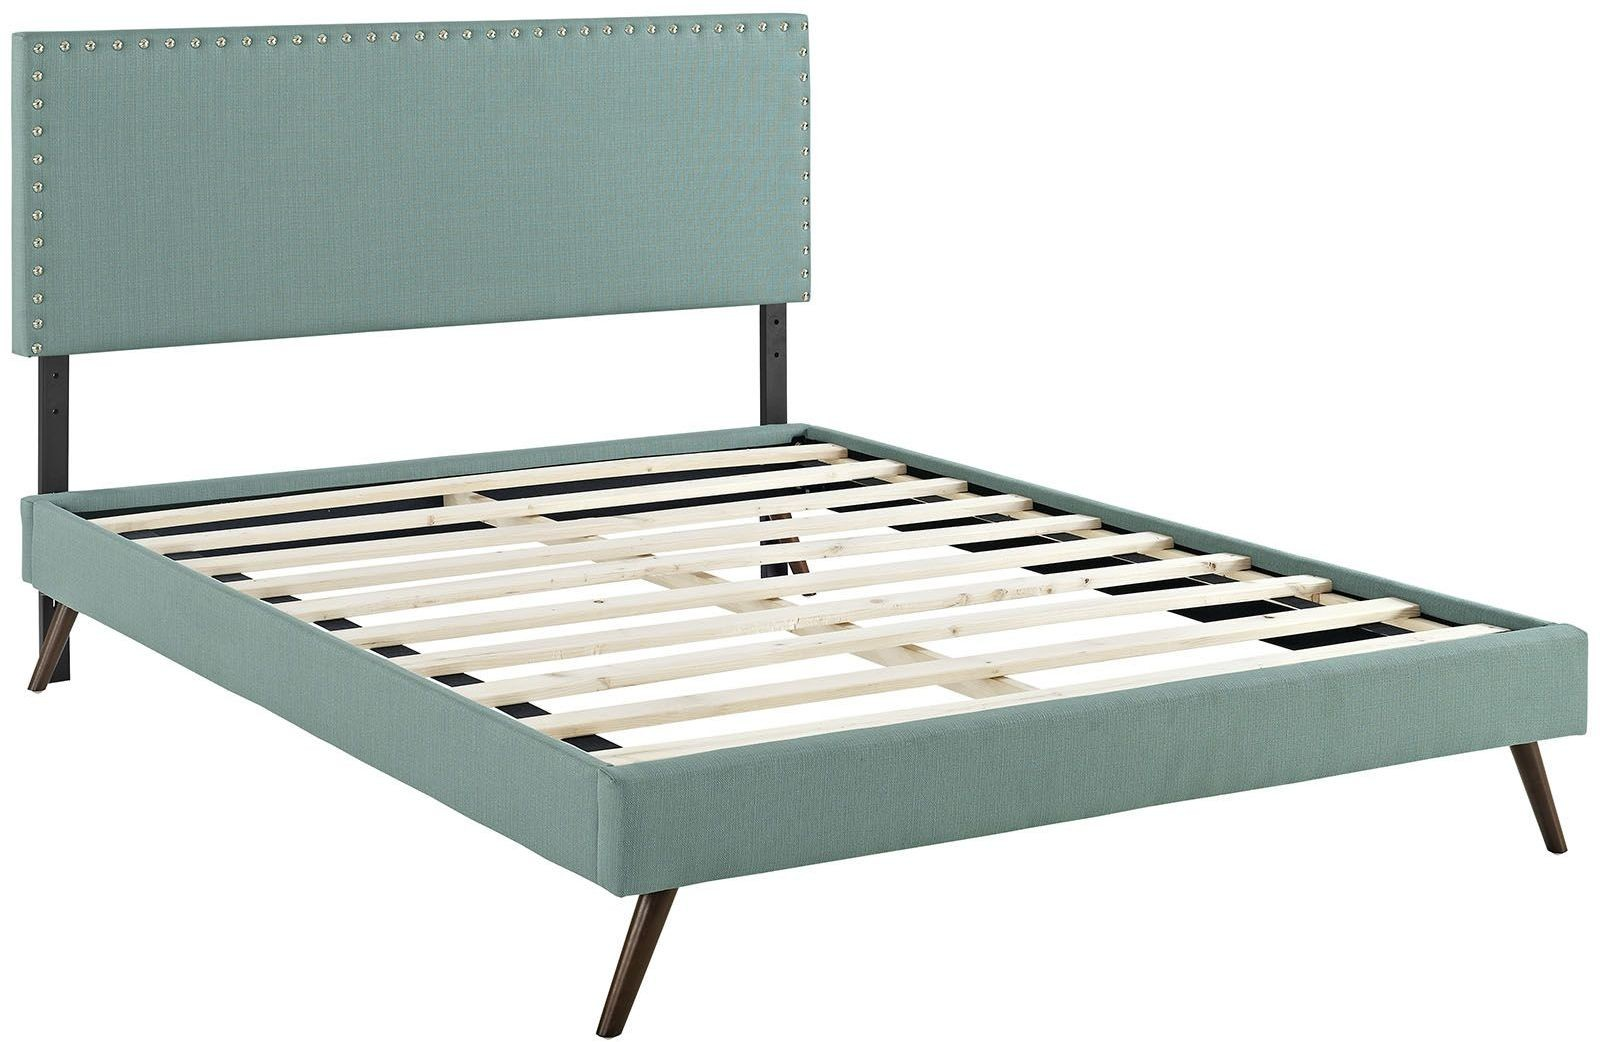 Phoebe Laguna King Upholstered Platform Bed with Round Splayed Legs ...